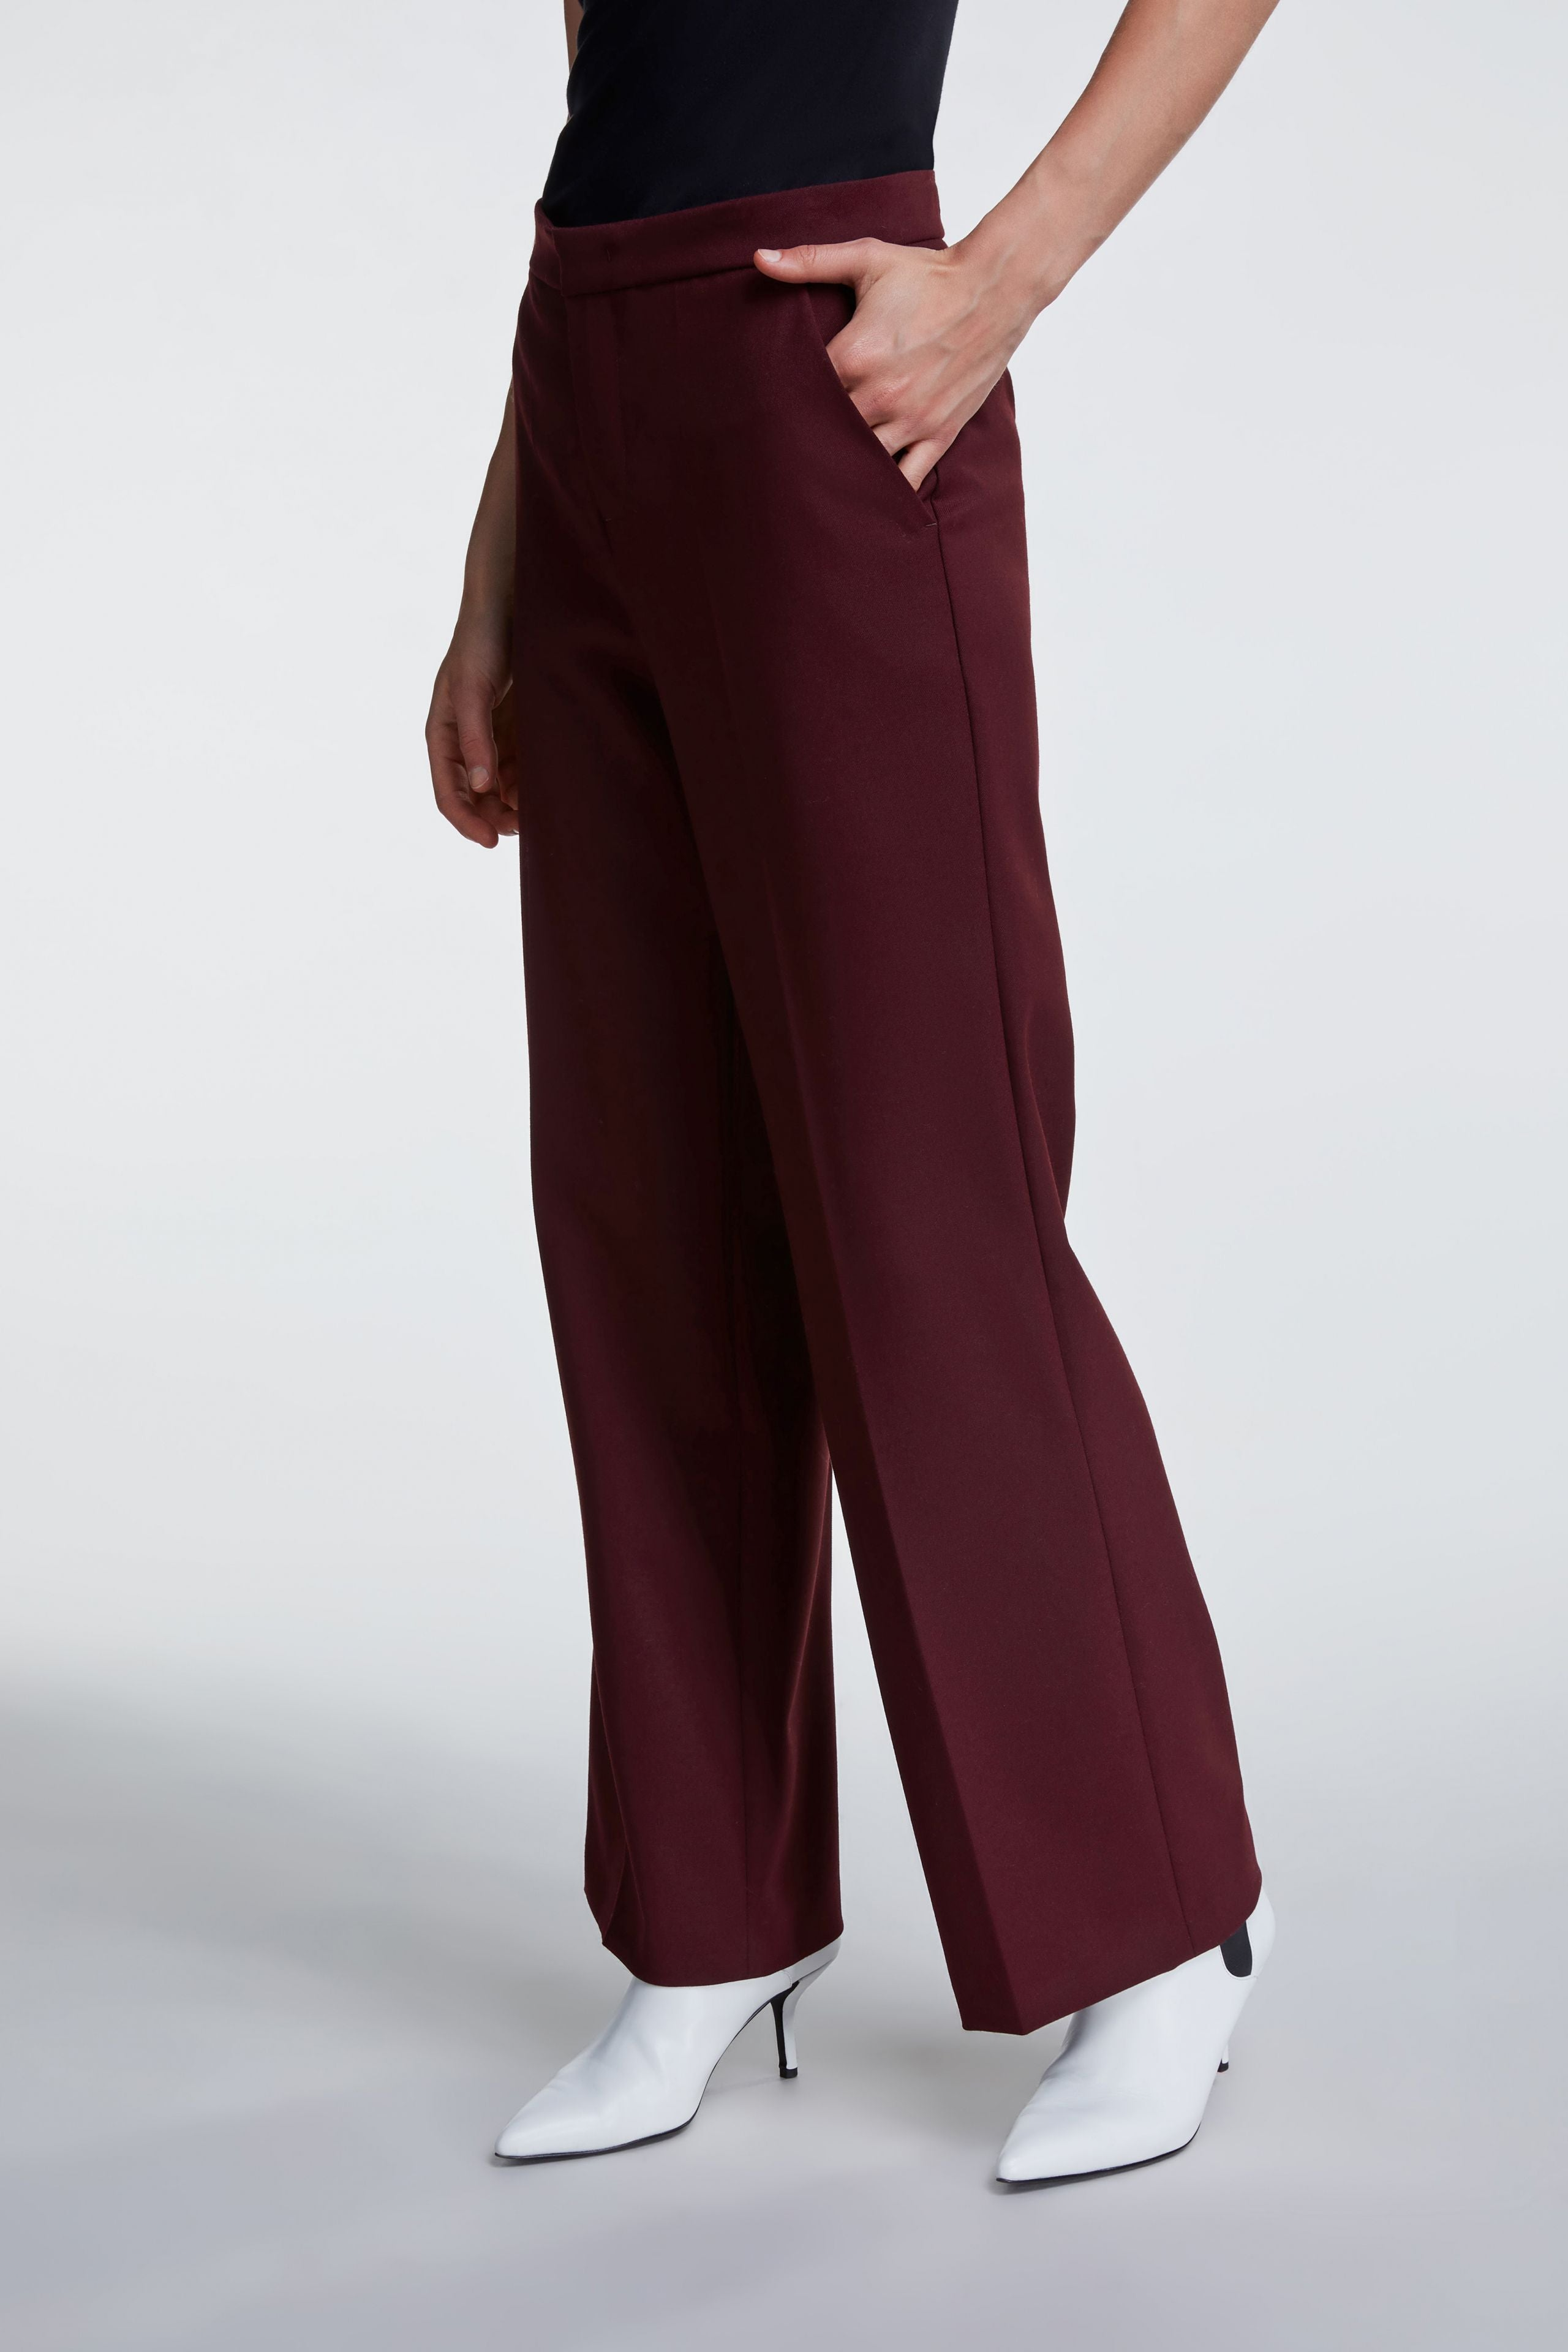 Set wide legged pants from Damsel in chiswick